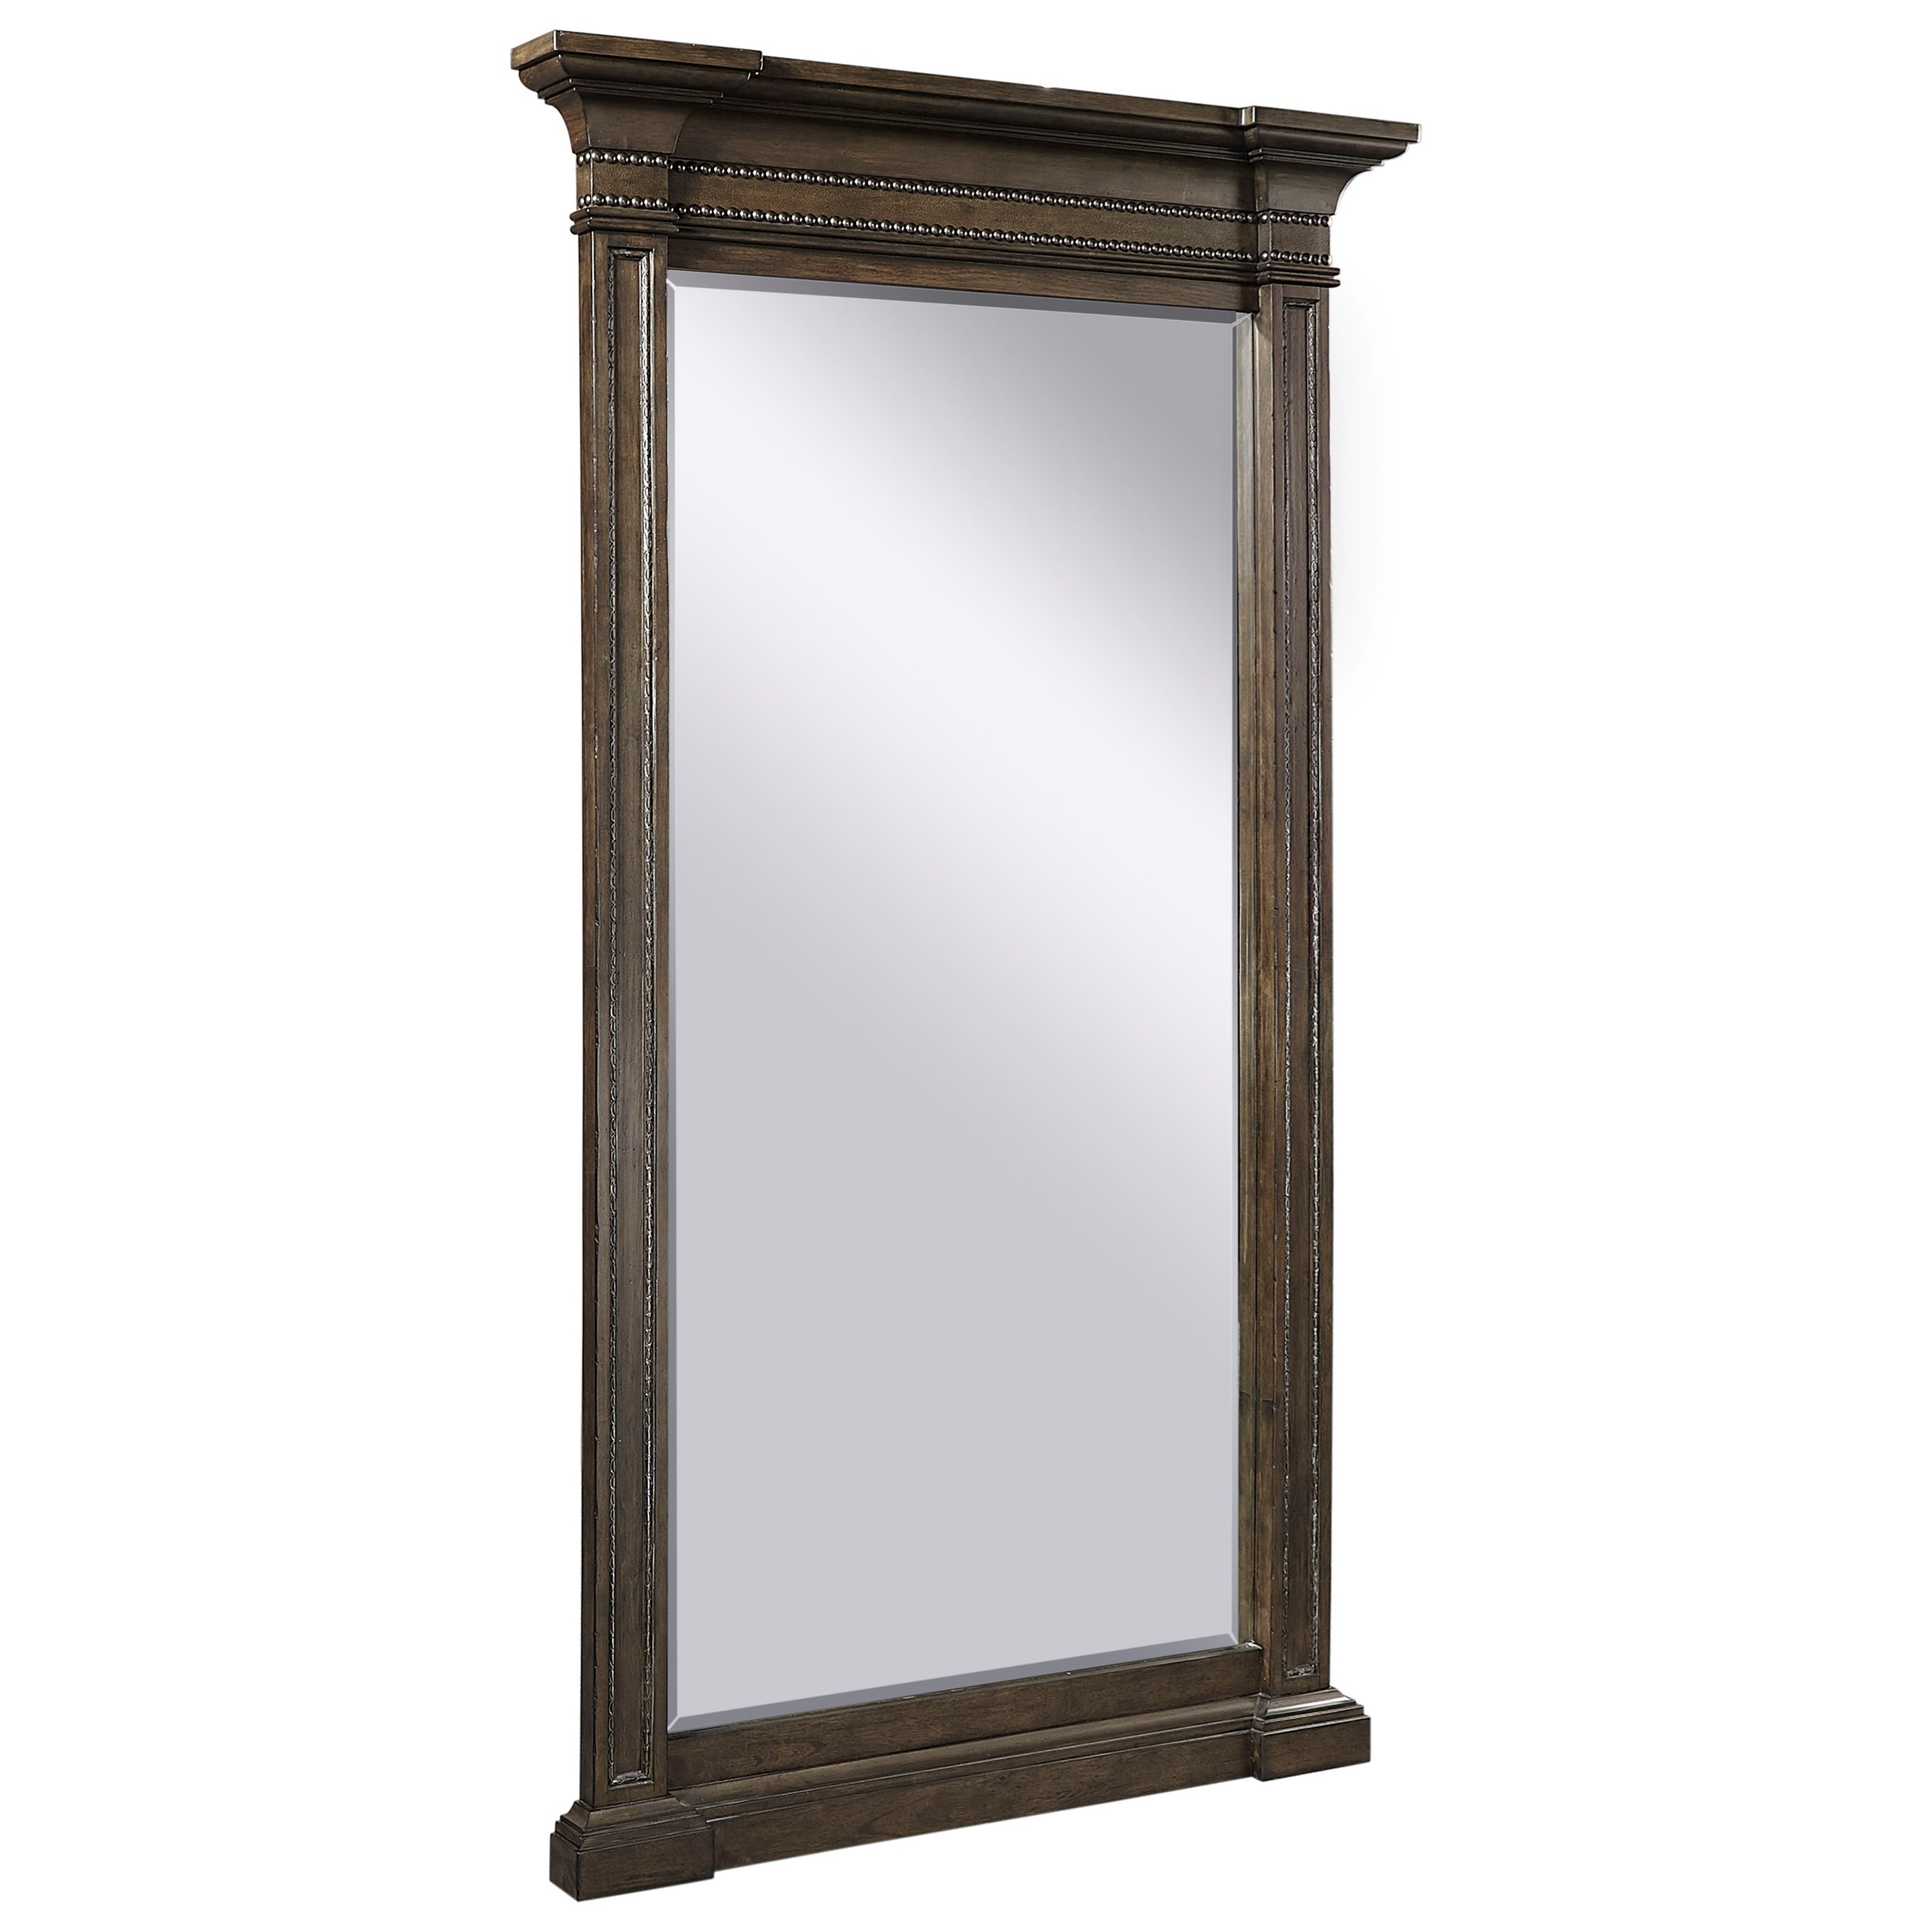 Foxhill Floor Mirror by Aspenhome at Mueller Furniture